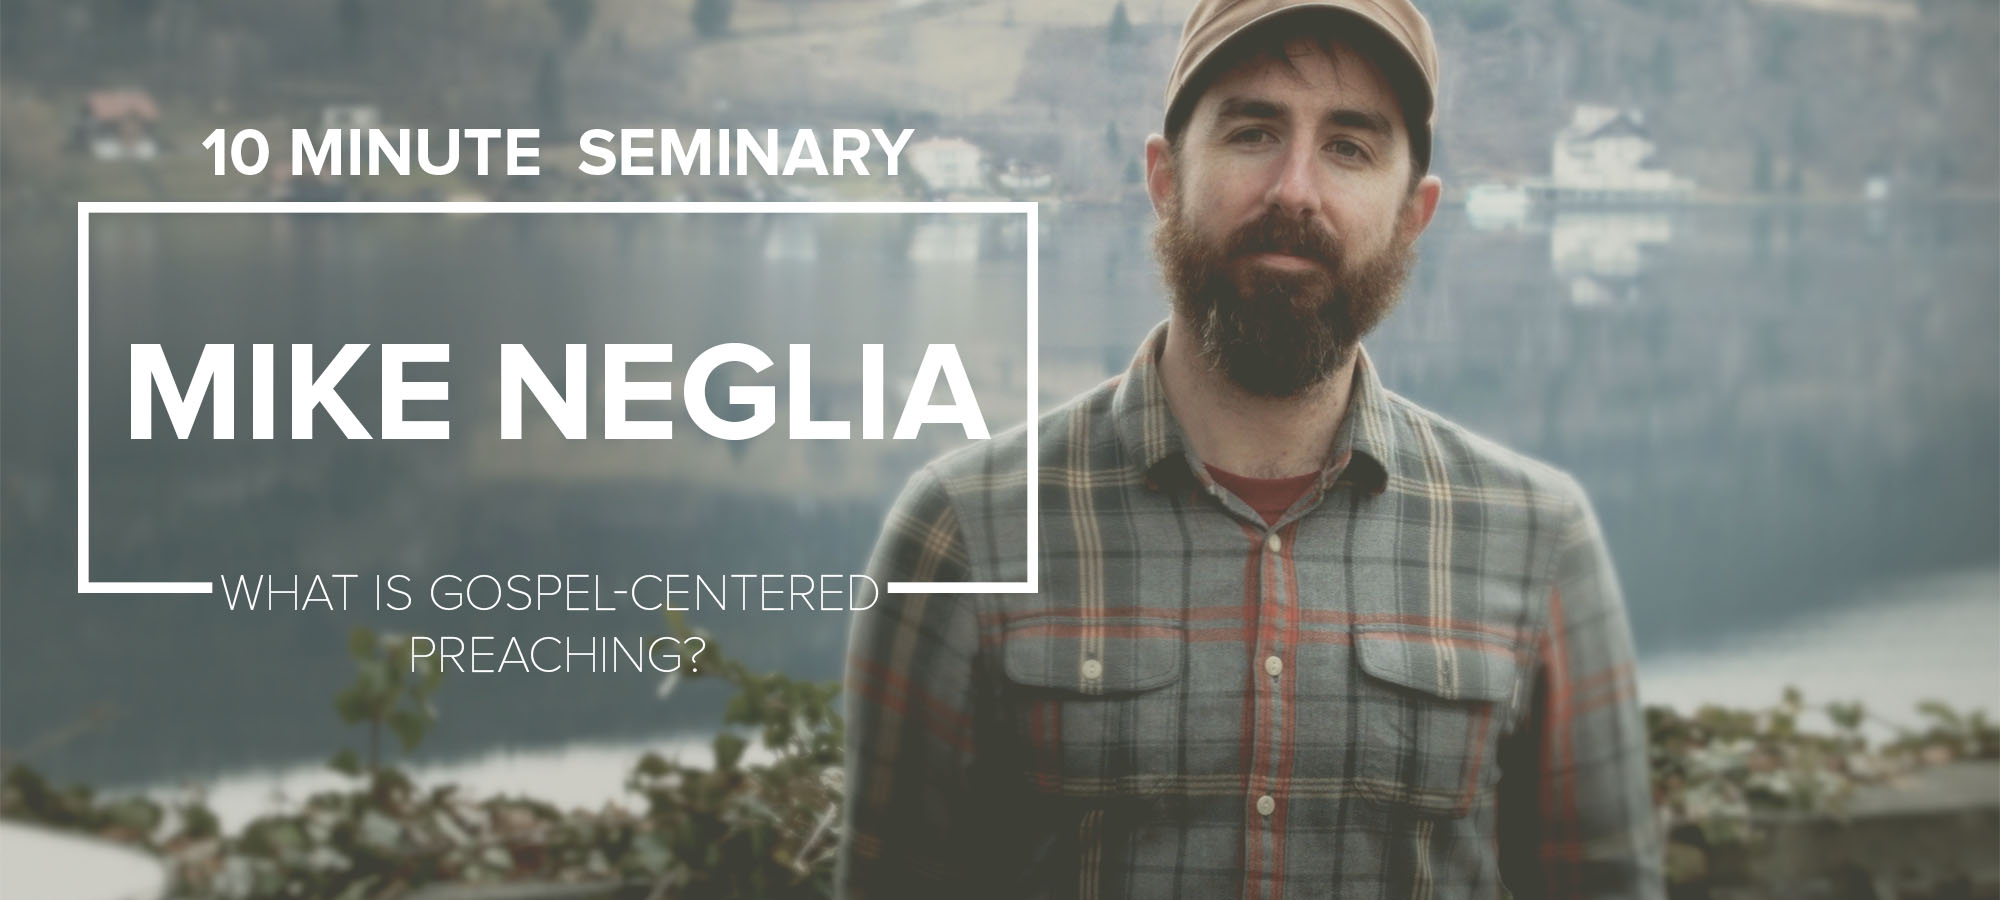 10 Minute Seminary: What is Gospel-Centered Preaching?